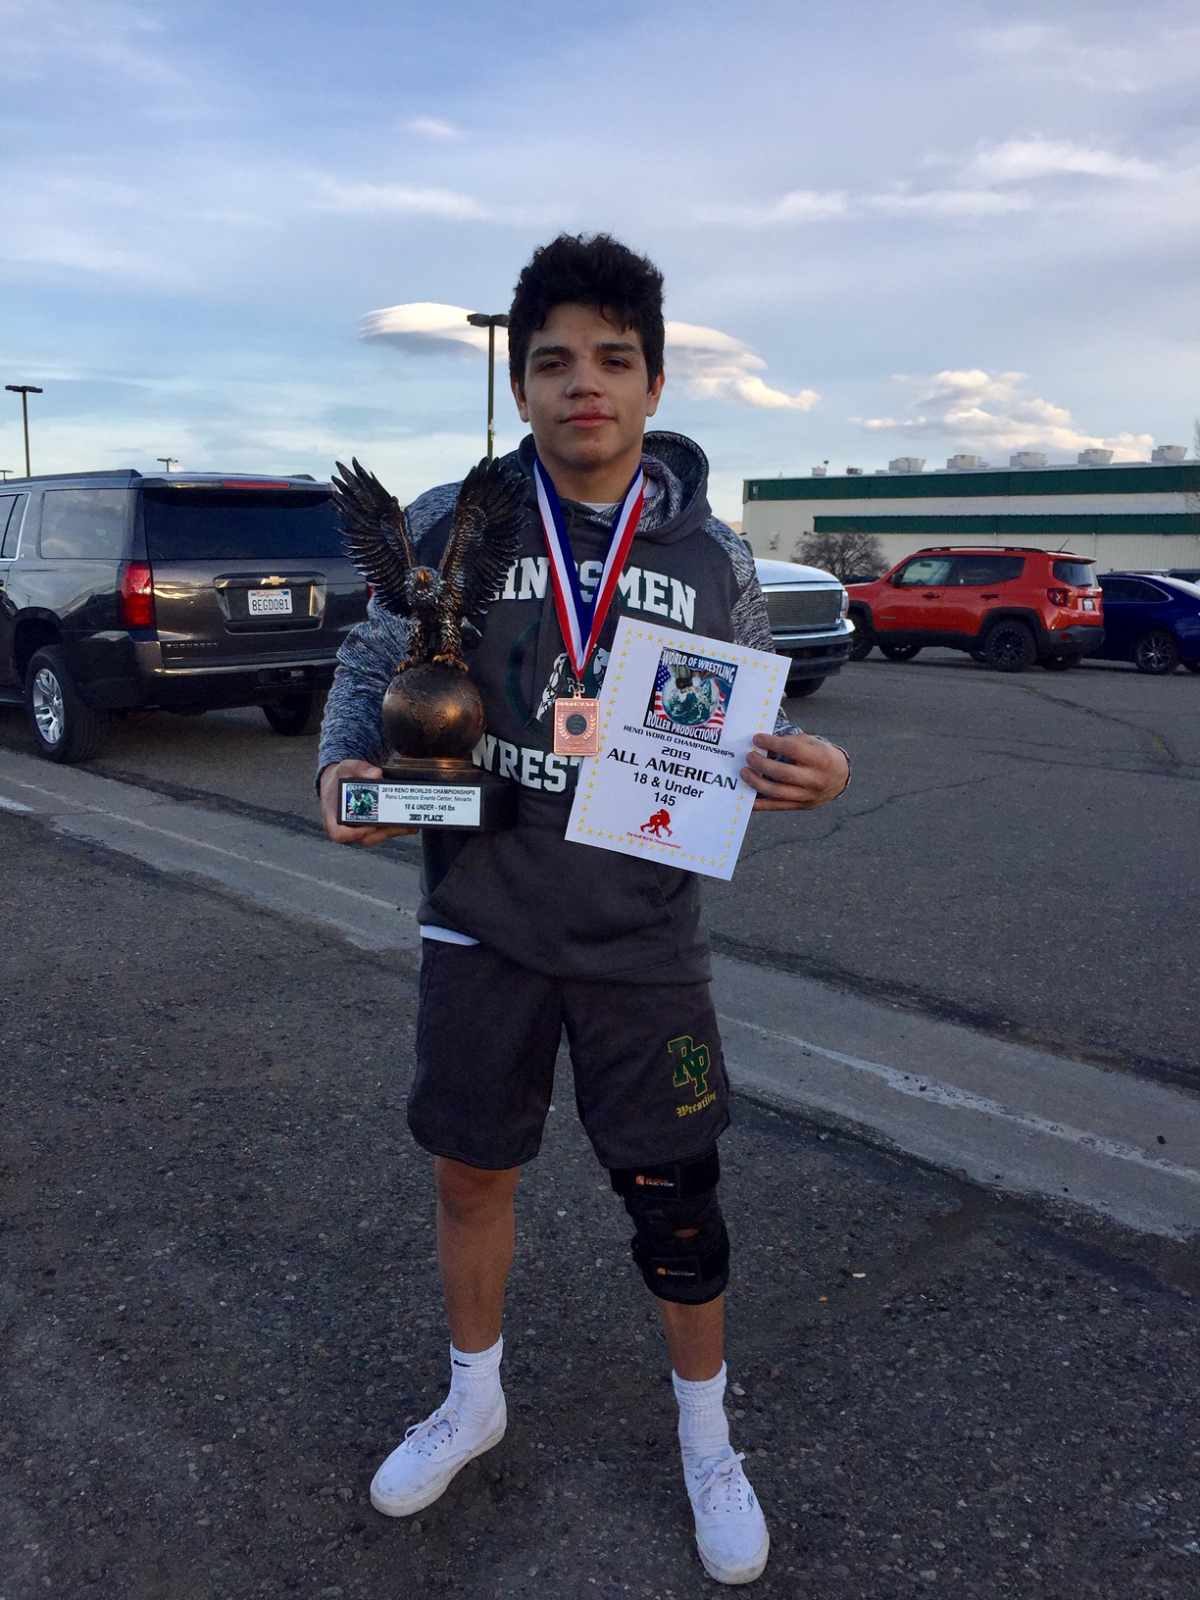 Jonny Hernandez placed 3rd in the 2019 Reno Worlds Championship